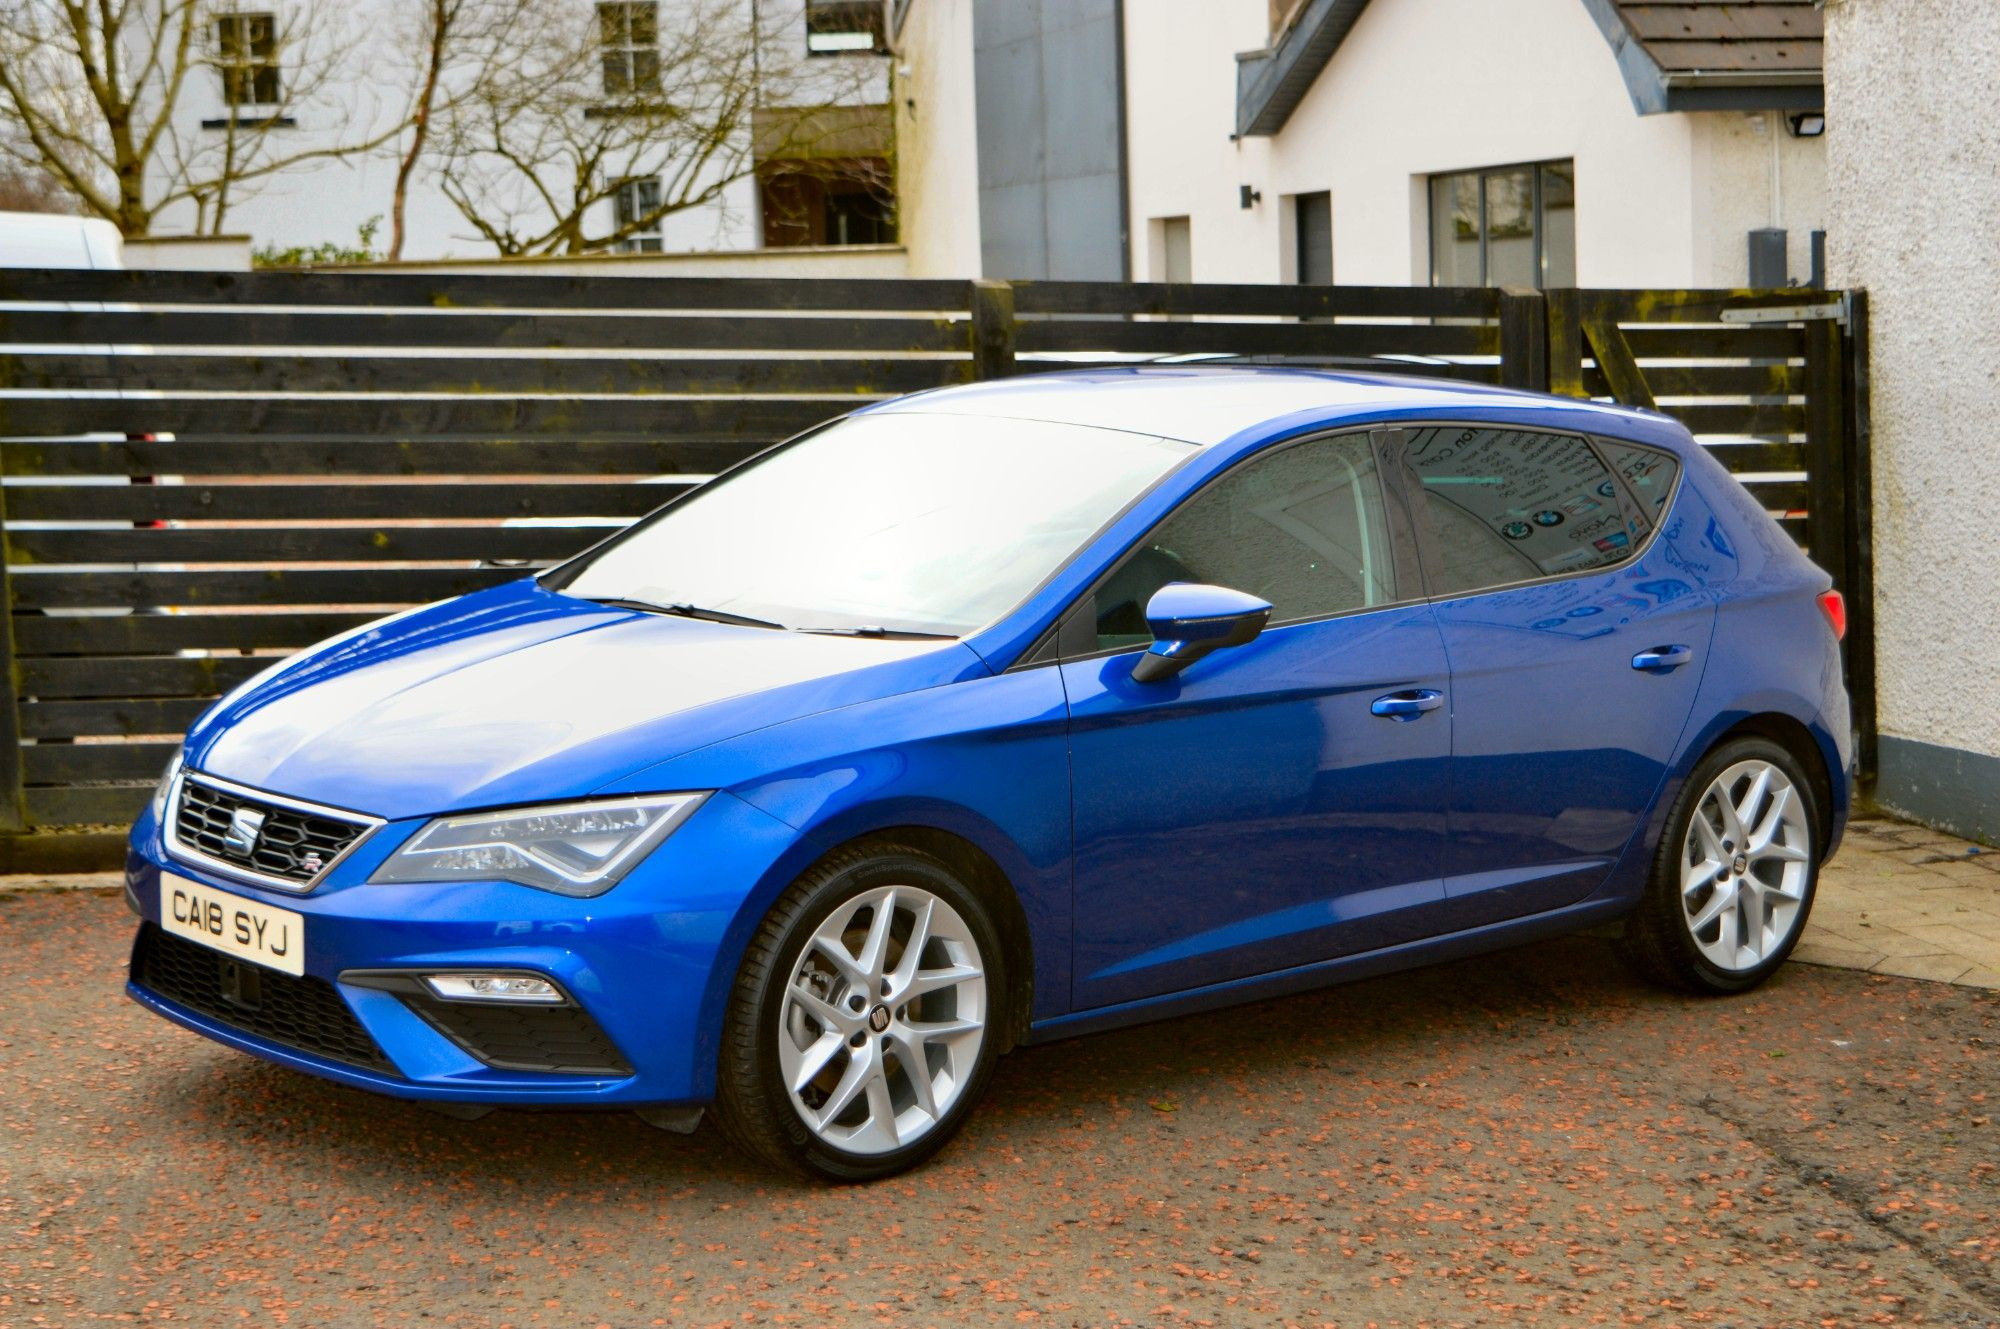 USED 2018 18 SEAT LEON 2.0 TDI FR TECHNOLOGY 5d 184 BHP 6 MONTHS RAC WARRANTY FREE + 12 MONTHS ROAD SIDE RECOVERY!